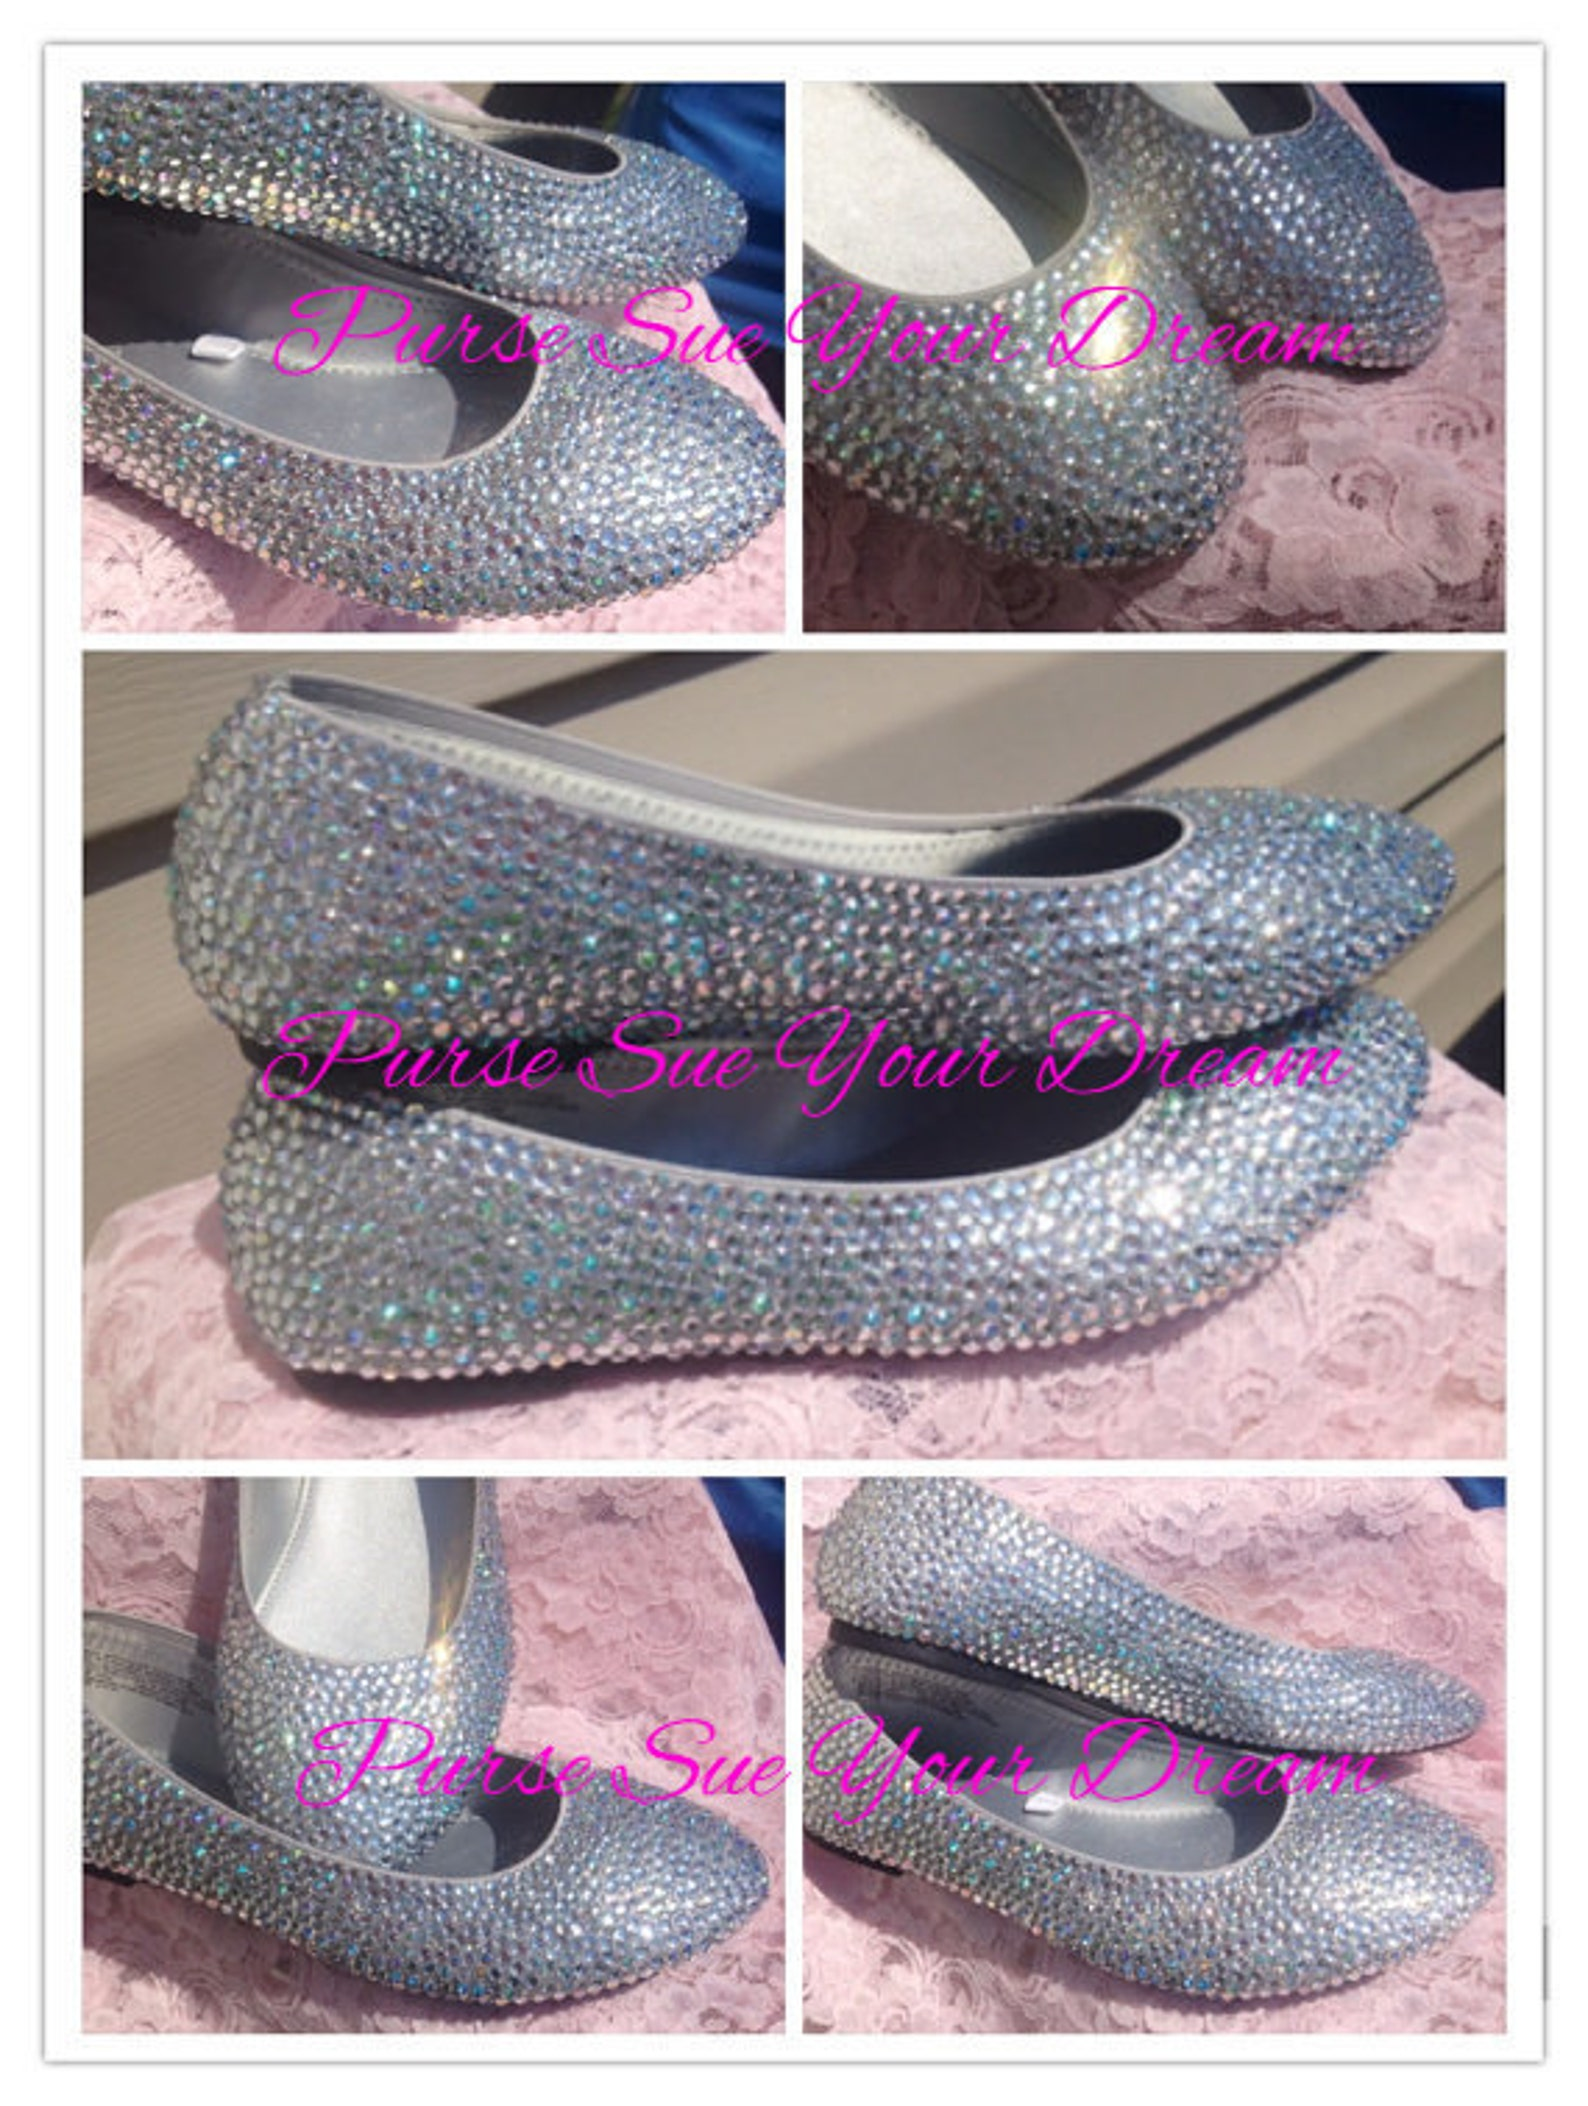 swarovski crystal rhinestone wedding ballet flats - bridal flat shoes - cinderella slippers - bridal swarovski crystal shoes - w